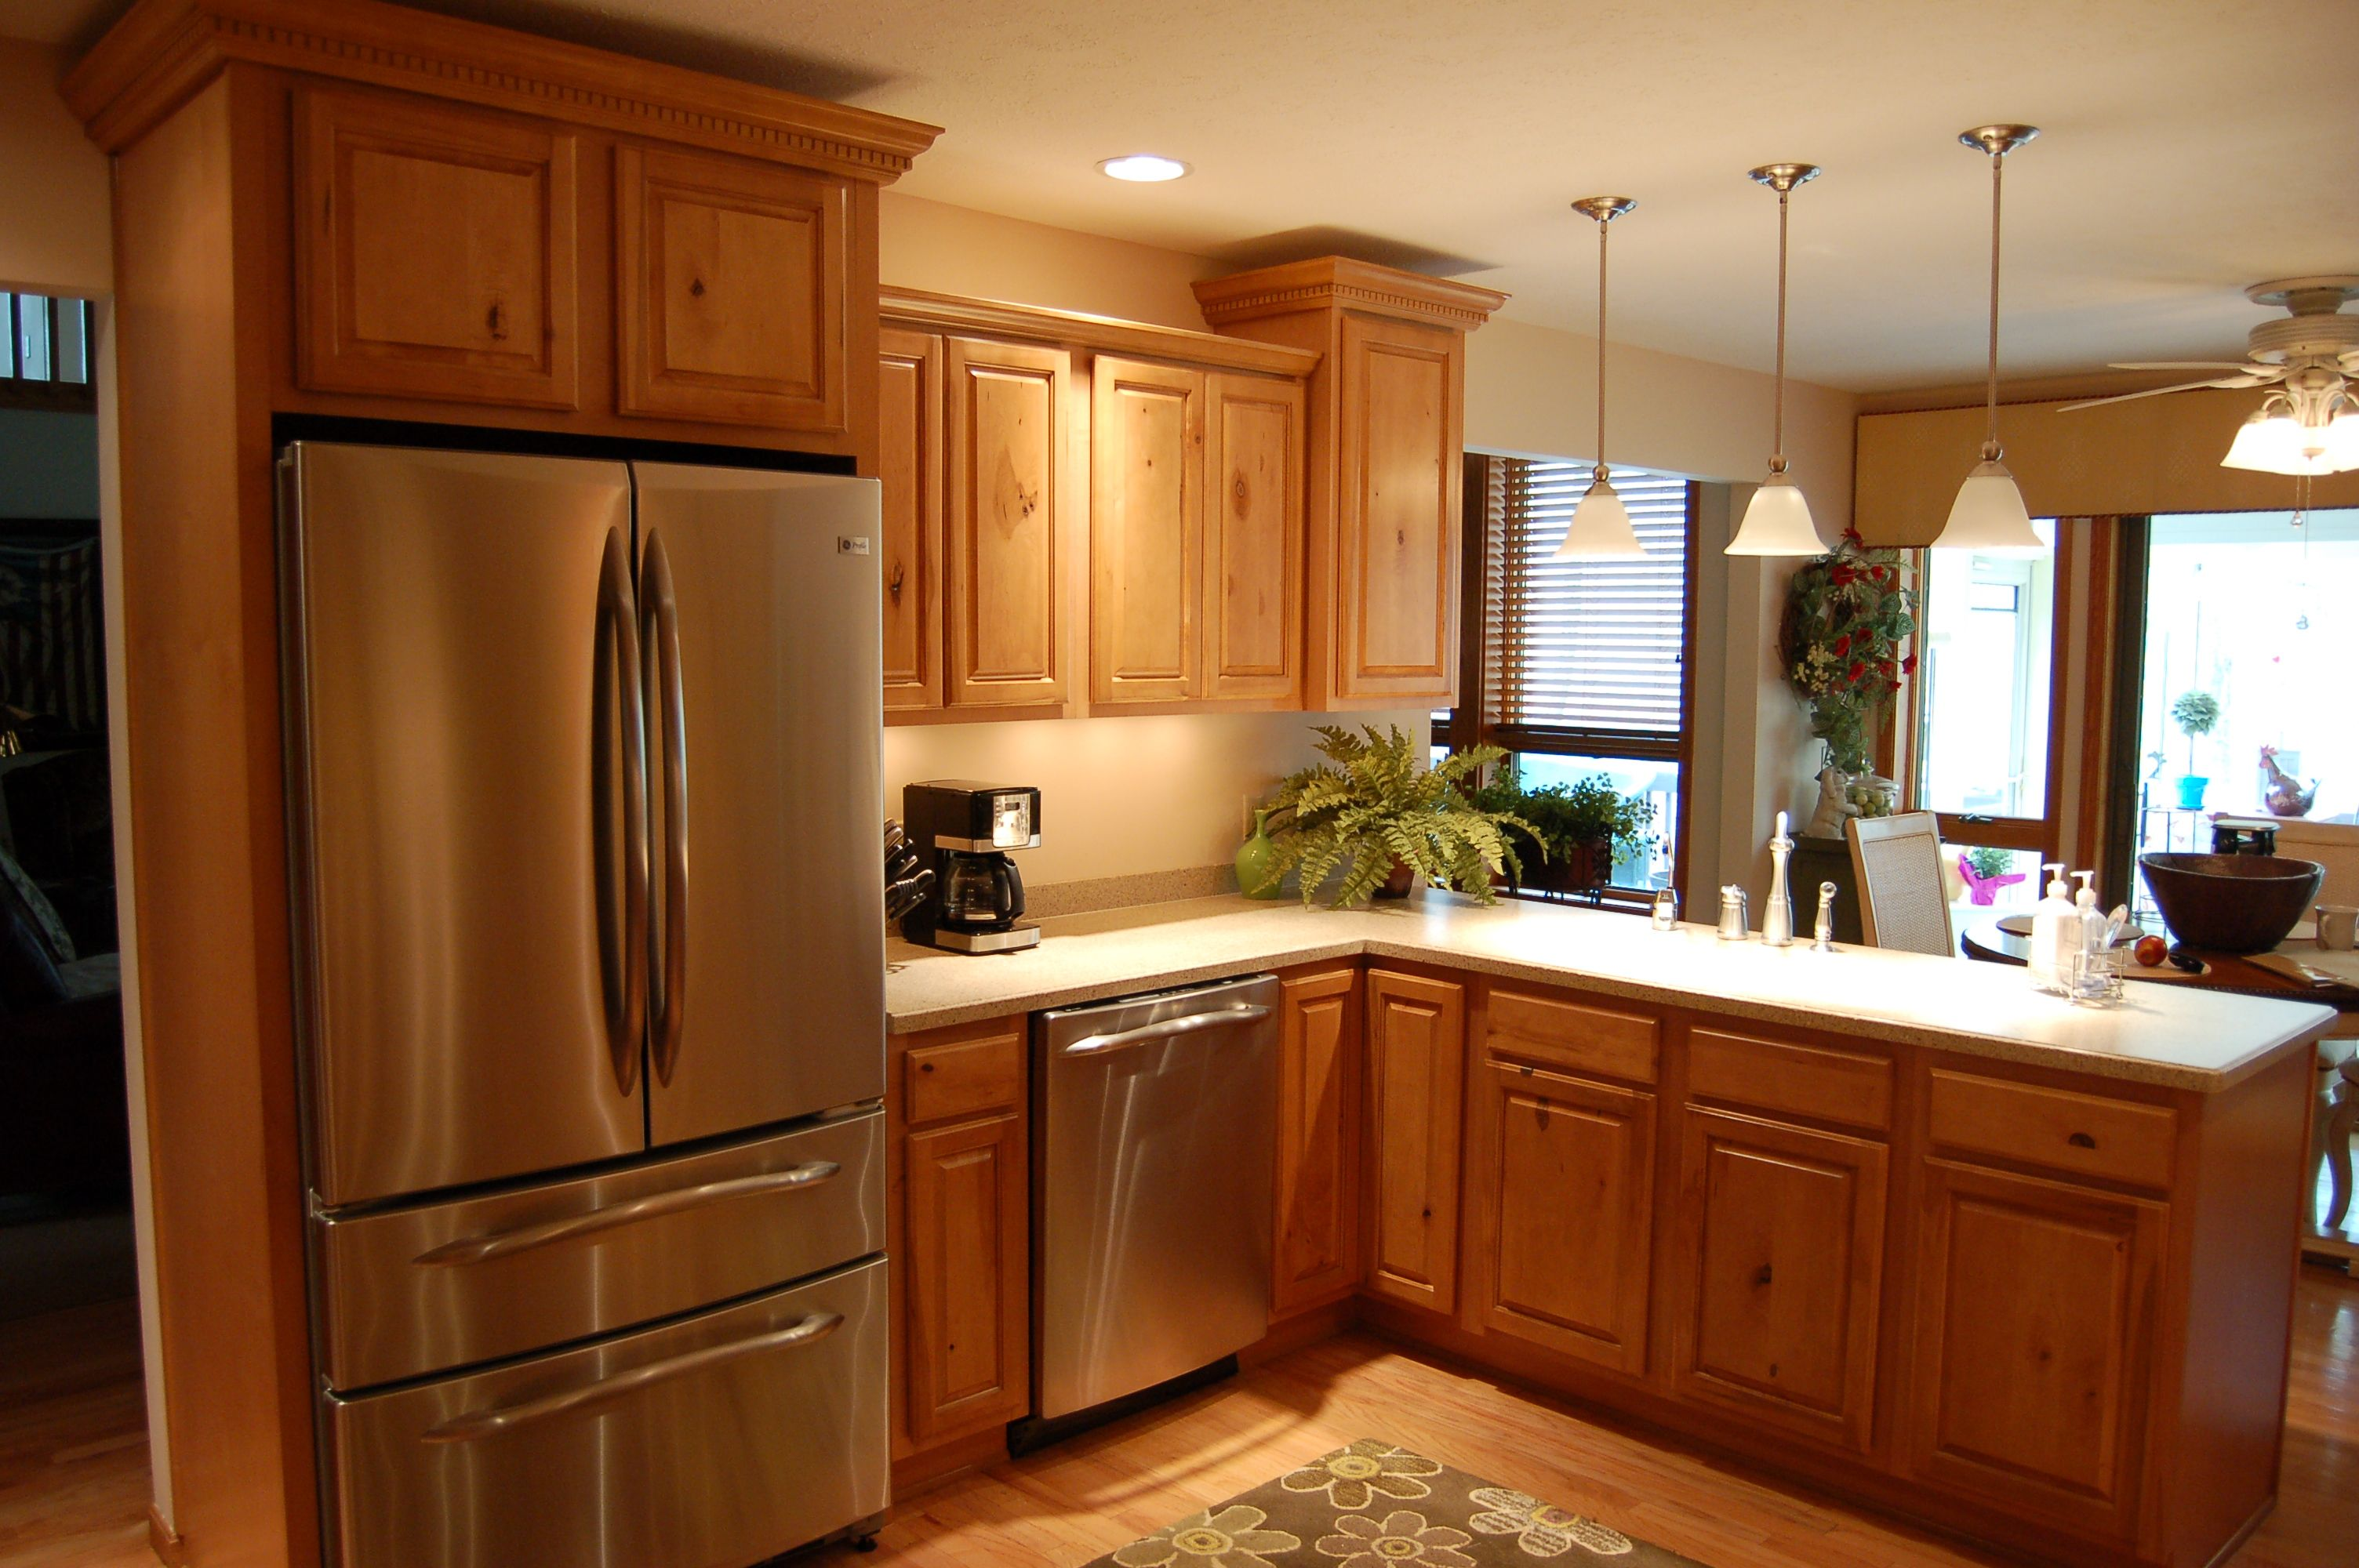 oak kitchen cabinets with white countertop - Remodel Kitchen Cabinets